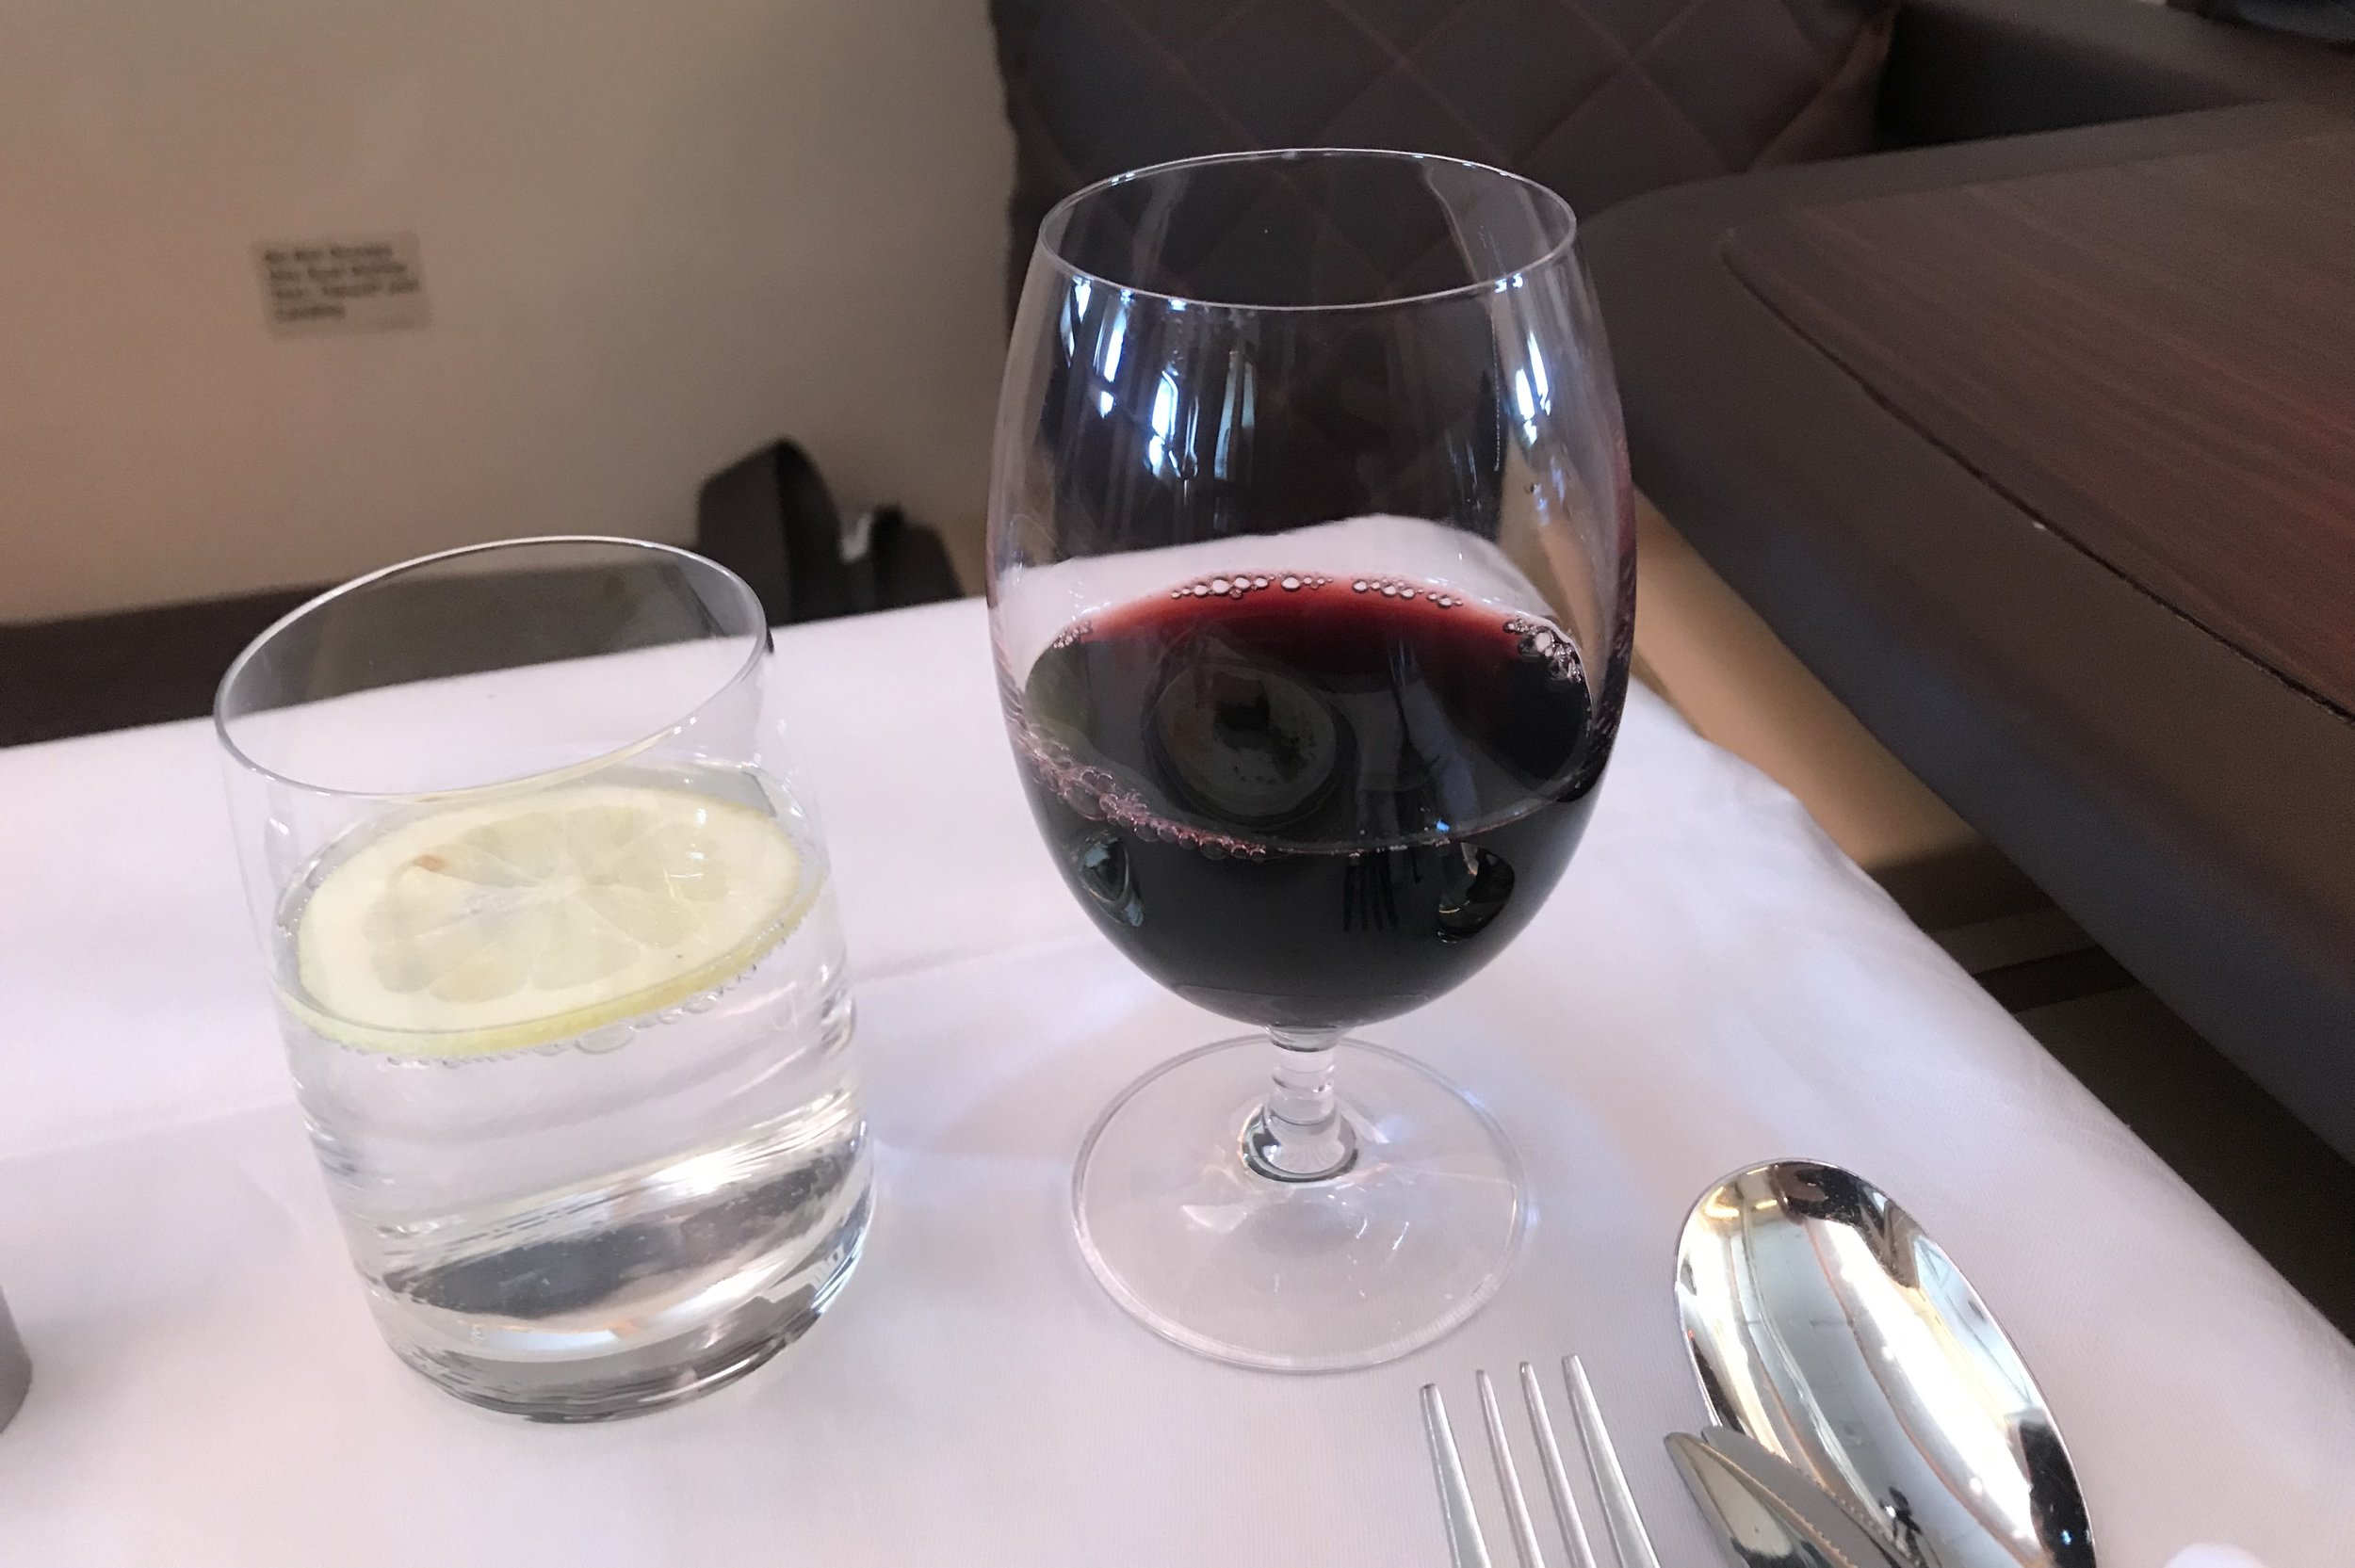 Singapore Airlines Suites Class – Red wine